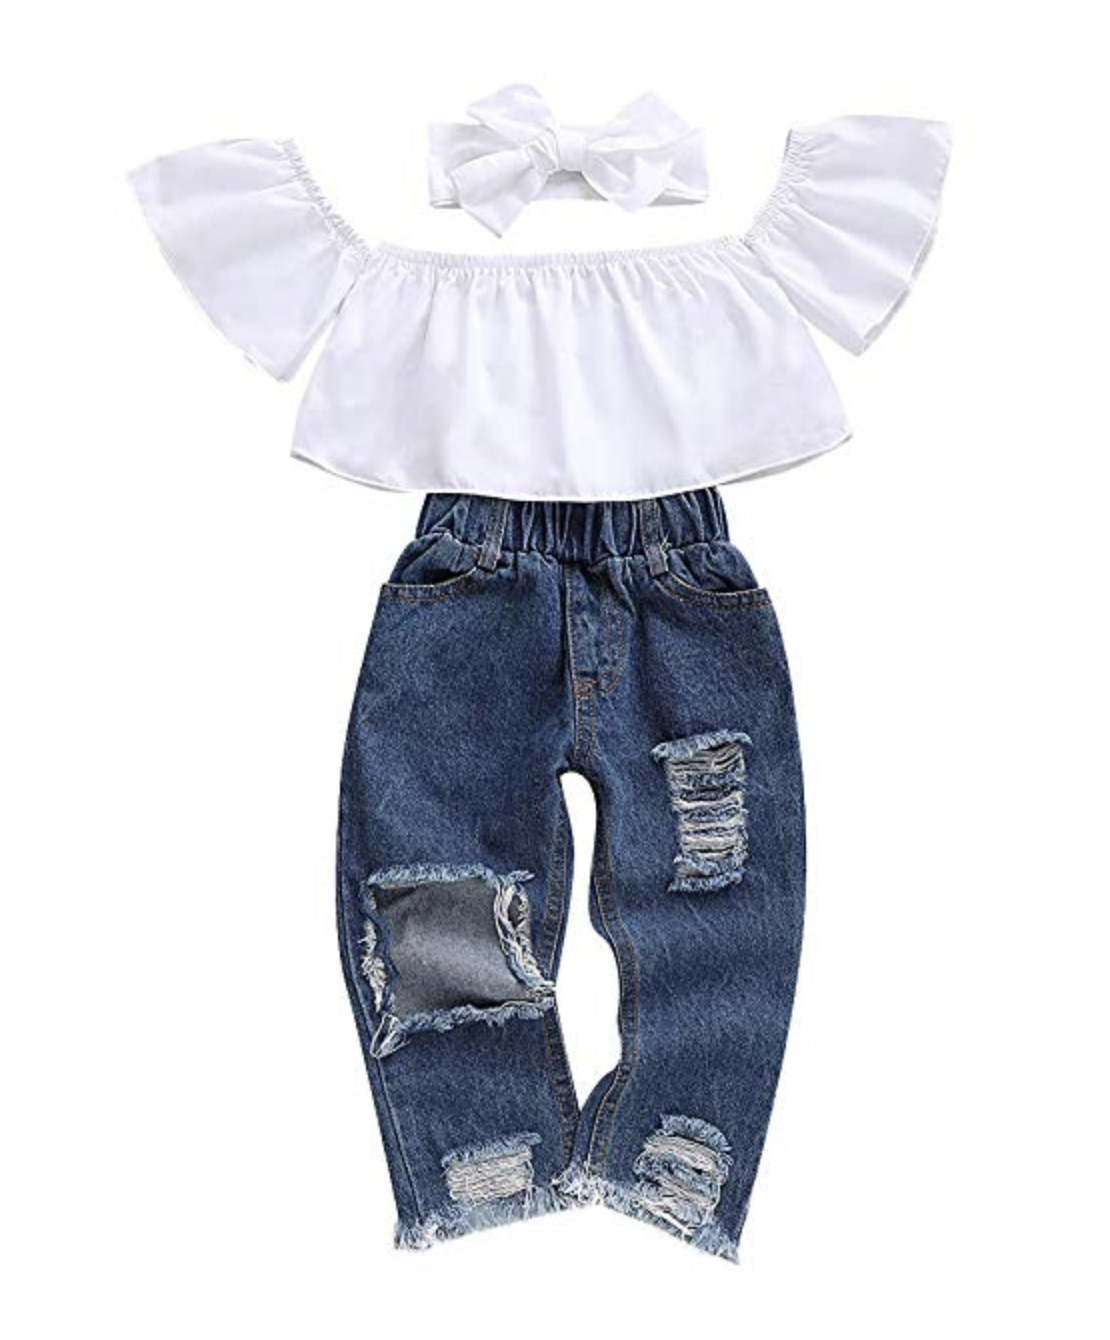 Amazon Prime Day 2 | Amazon Prime | Prime Day 2 | Amazon Fashion | Beauty blogger Mash Elle | toddler sets | toddler clothing